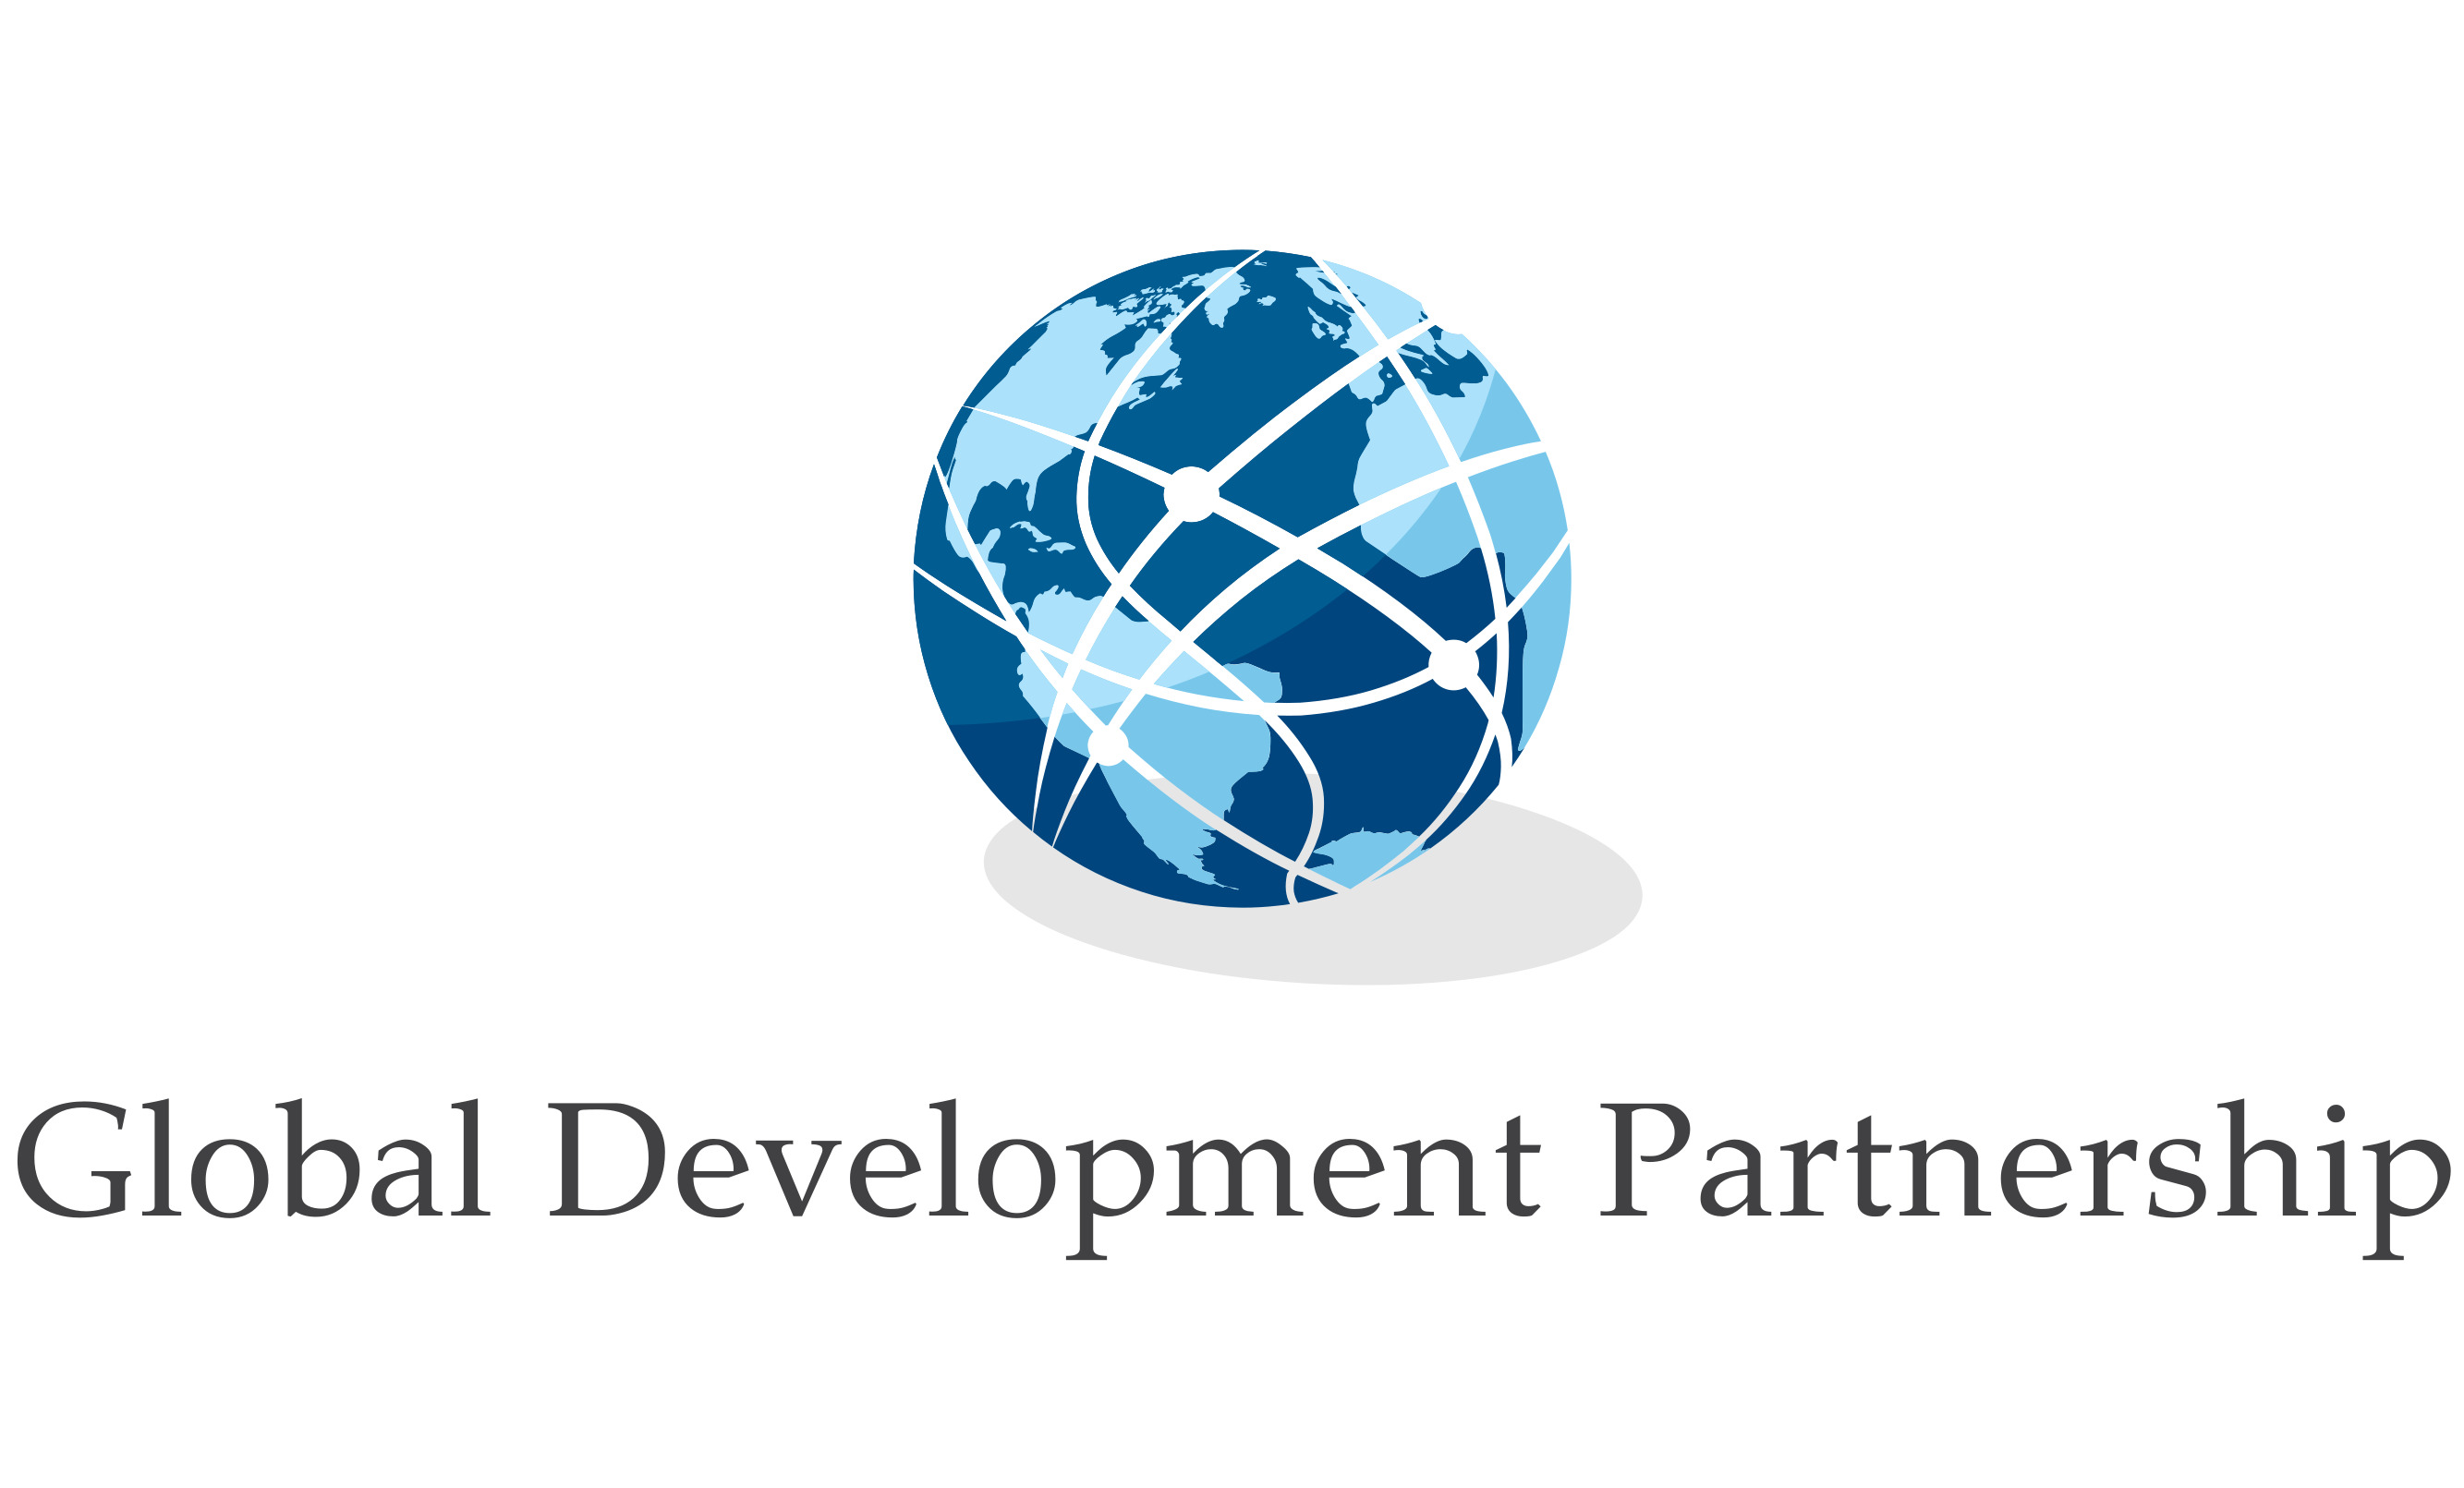 Global Development Partnership Ltd.